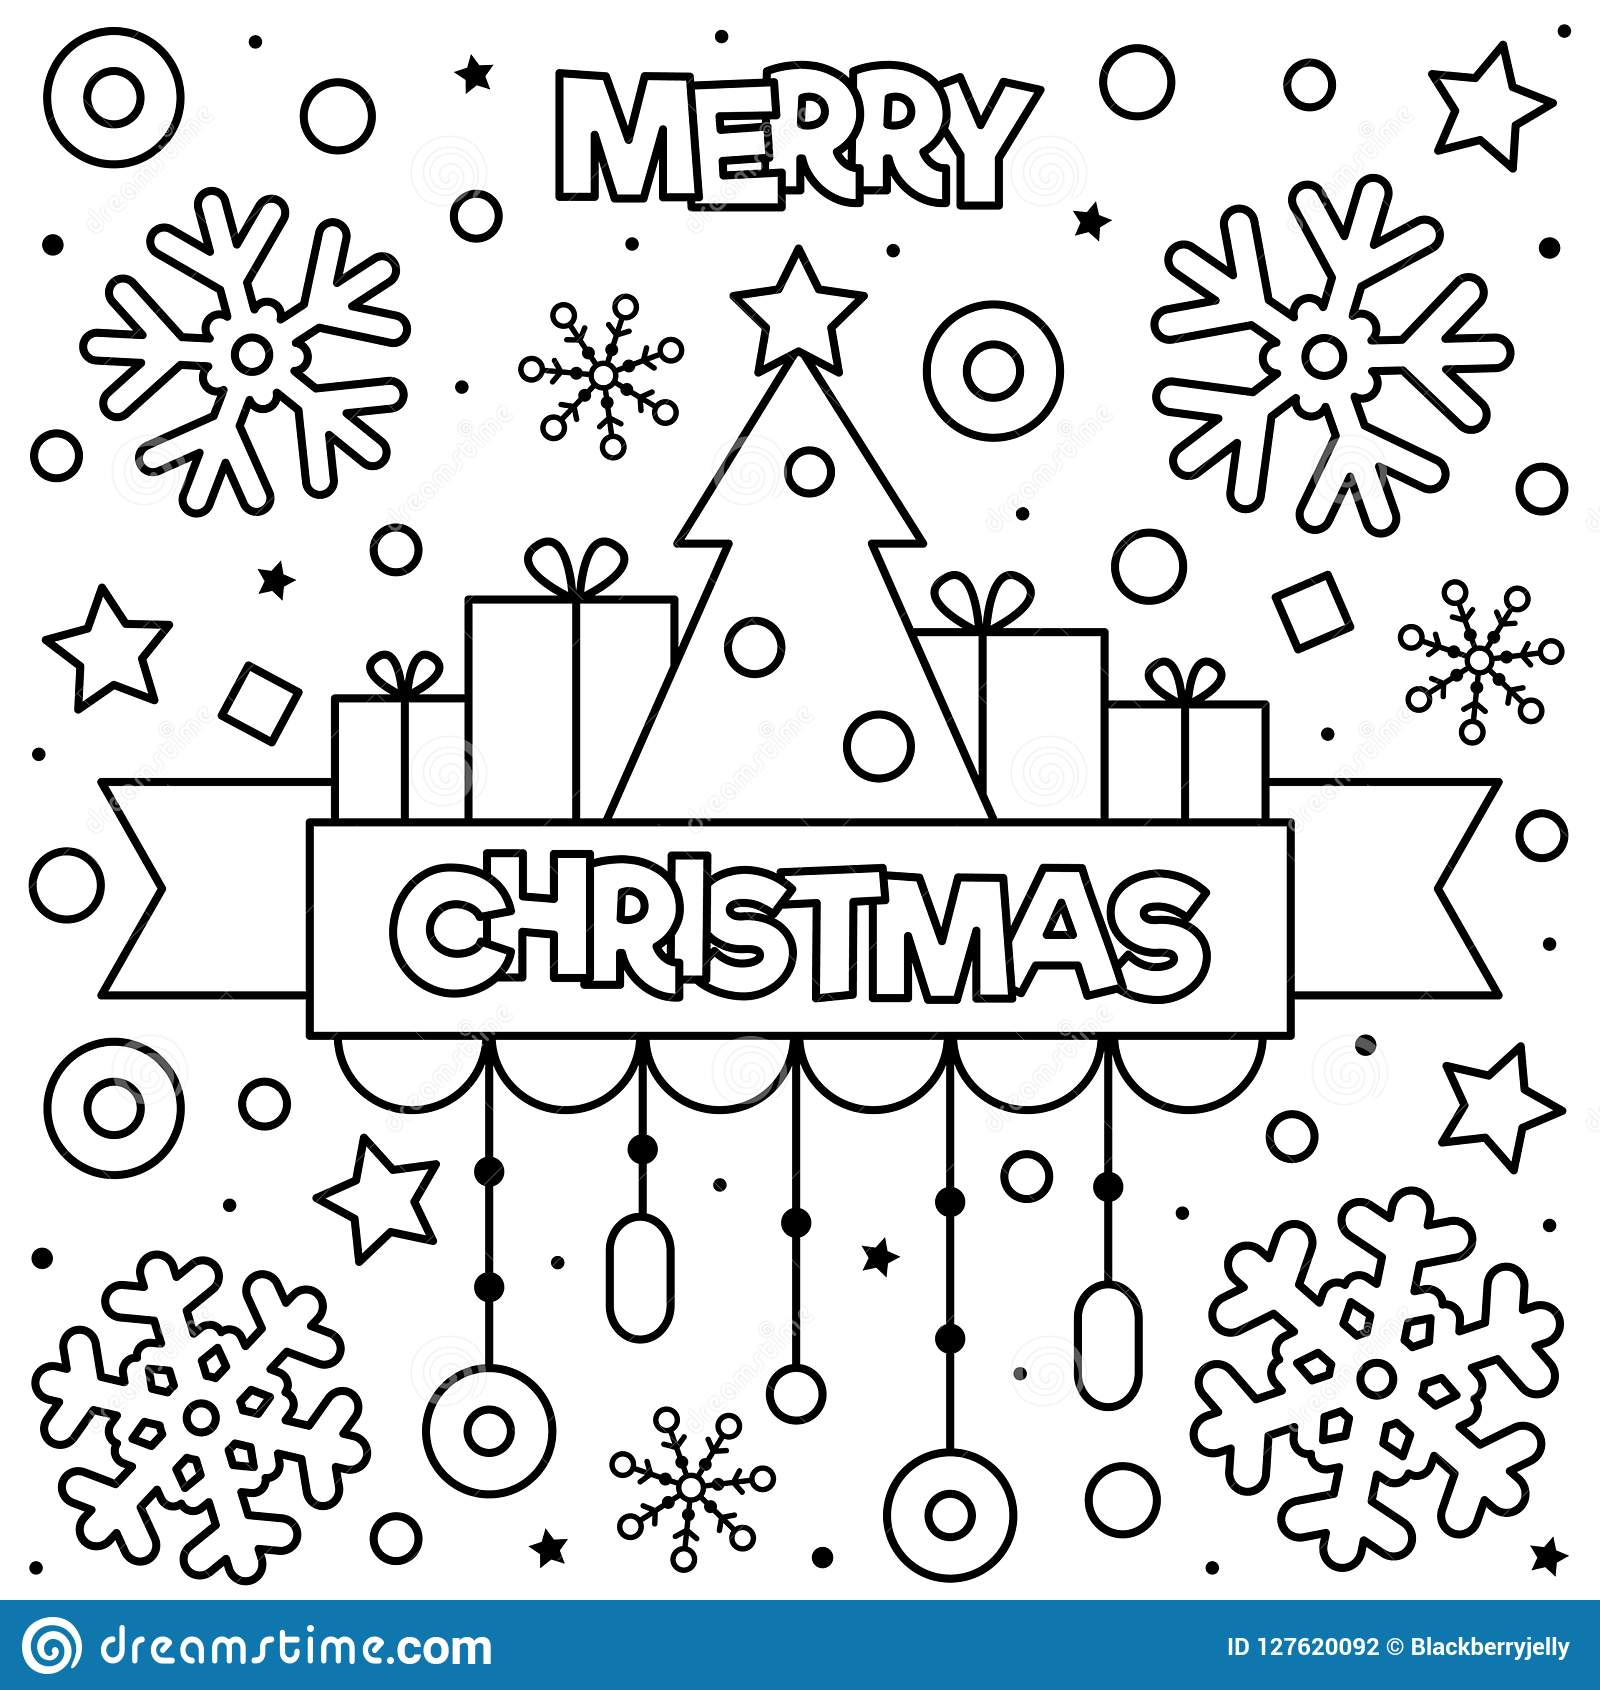 - Merry Christmas. Coloring Page. Black And White Vector